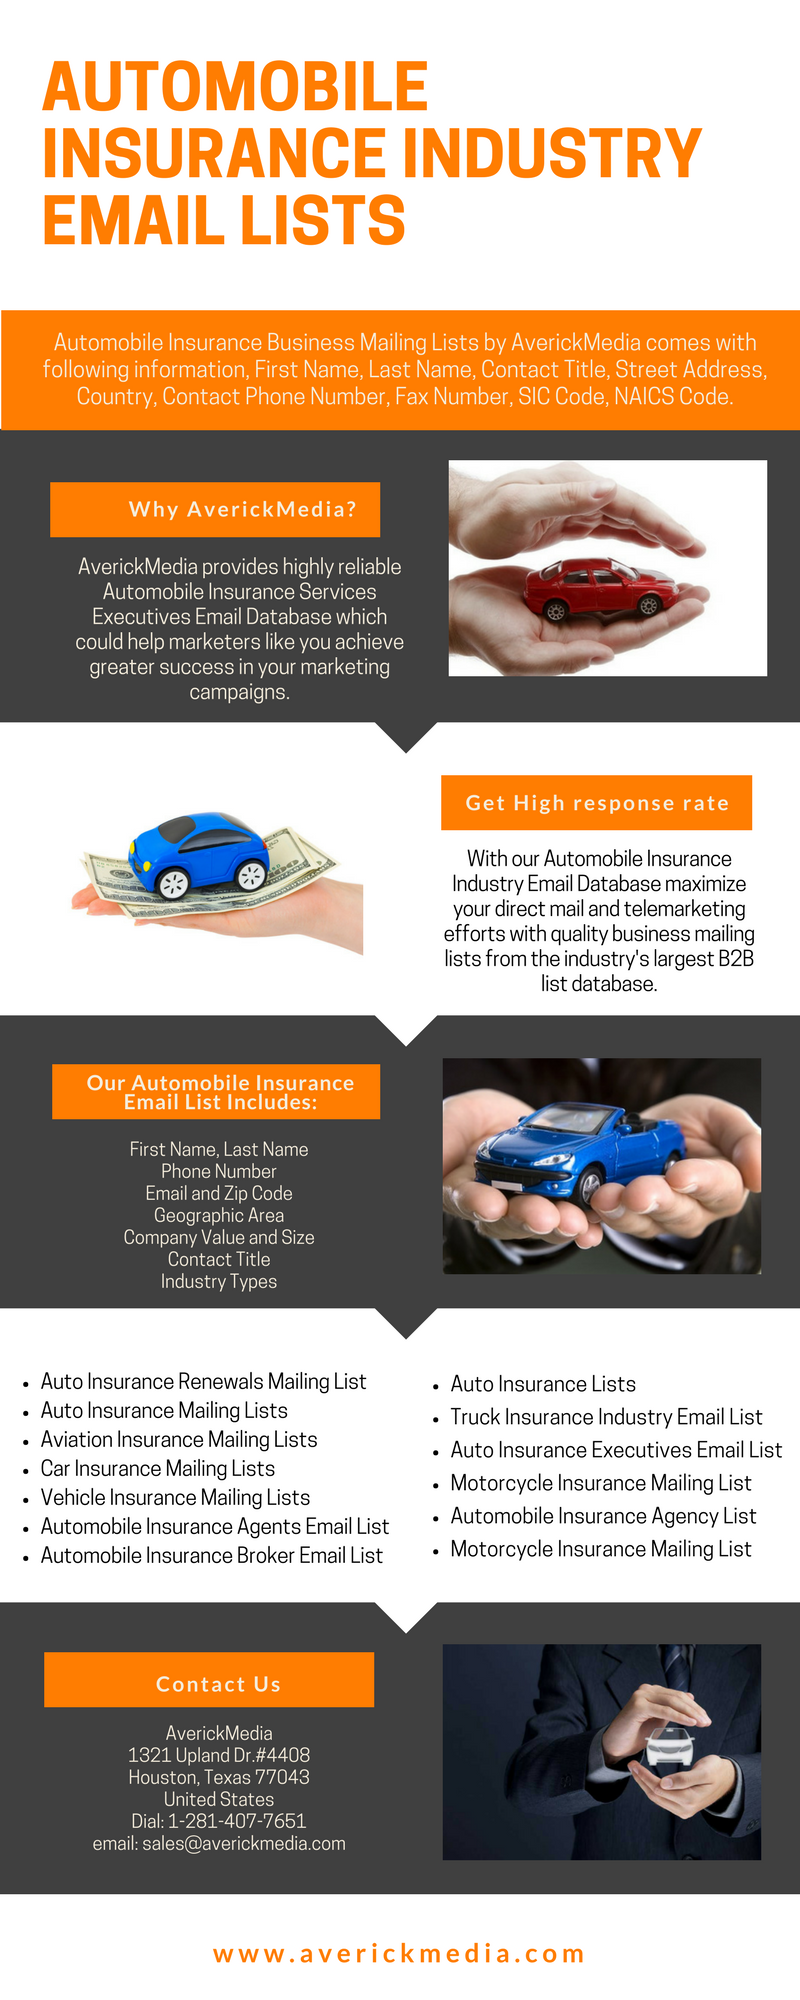 Expanding Business Scope With Averickmedia S Automobile Insurance